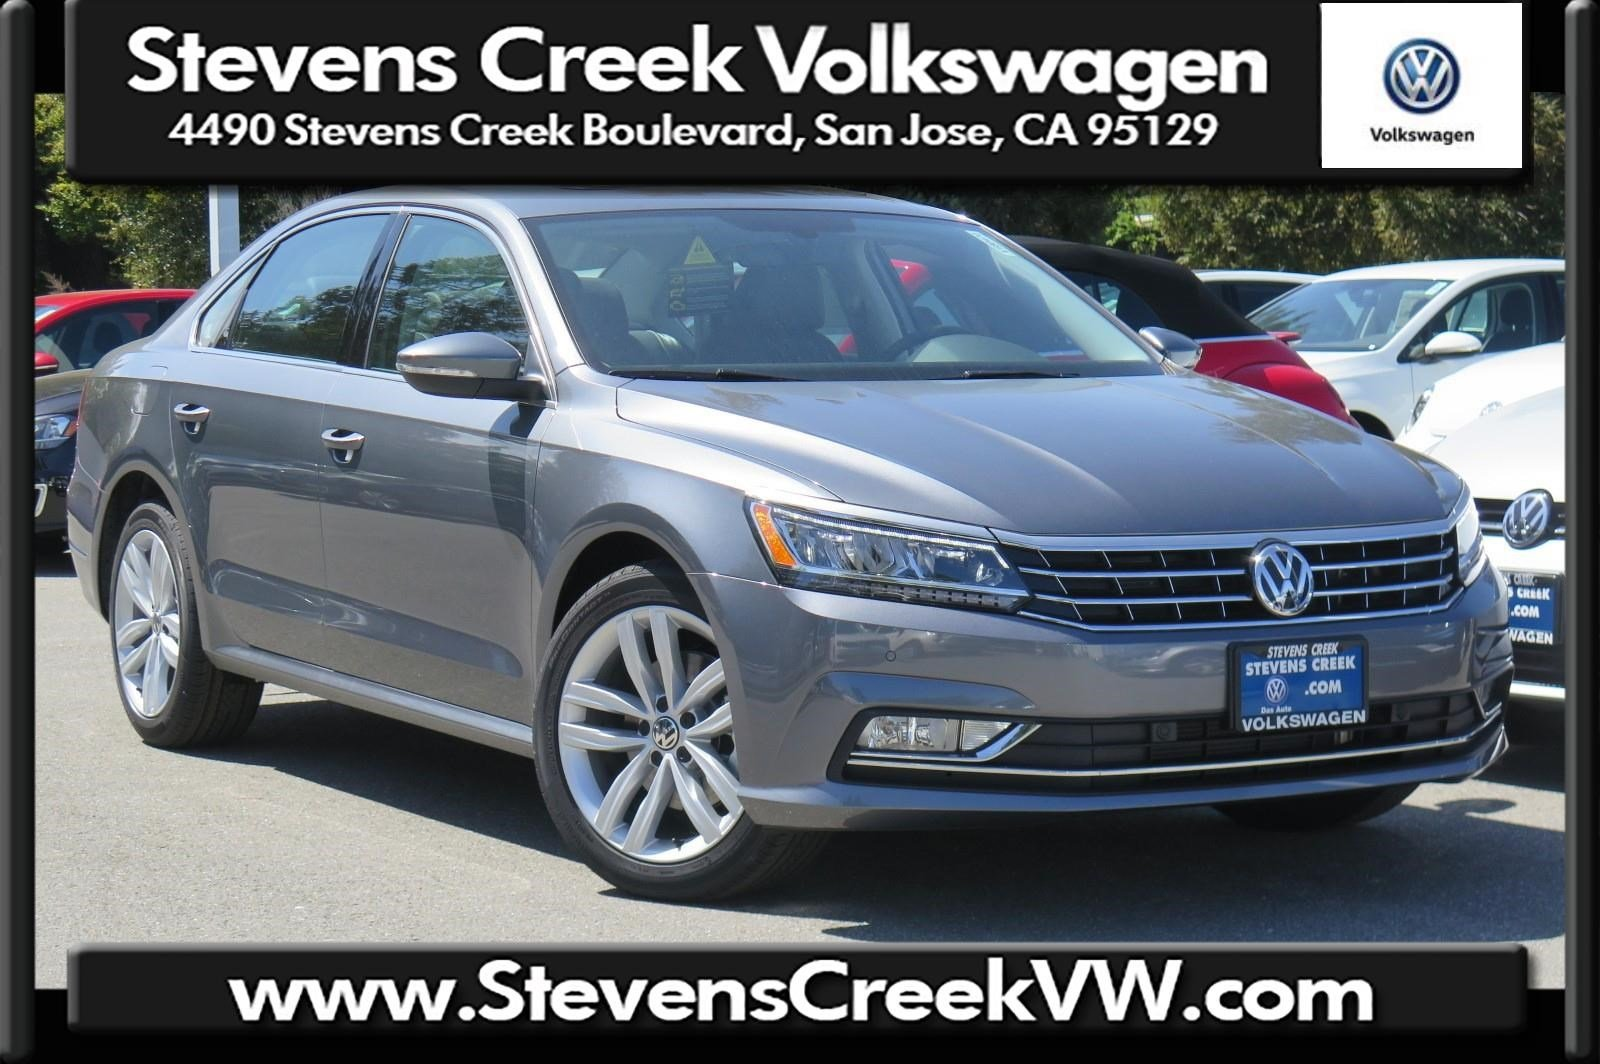 New 2018 Volkswagen Passat 2.0T SE w/Technology FWD 4dr Car VIN# 1VWBA7A37JC027636 MSRP $30,900